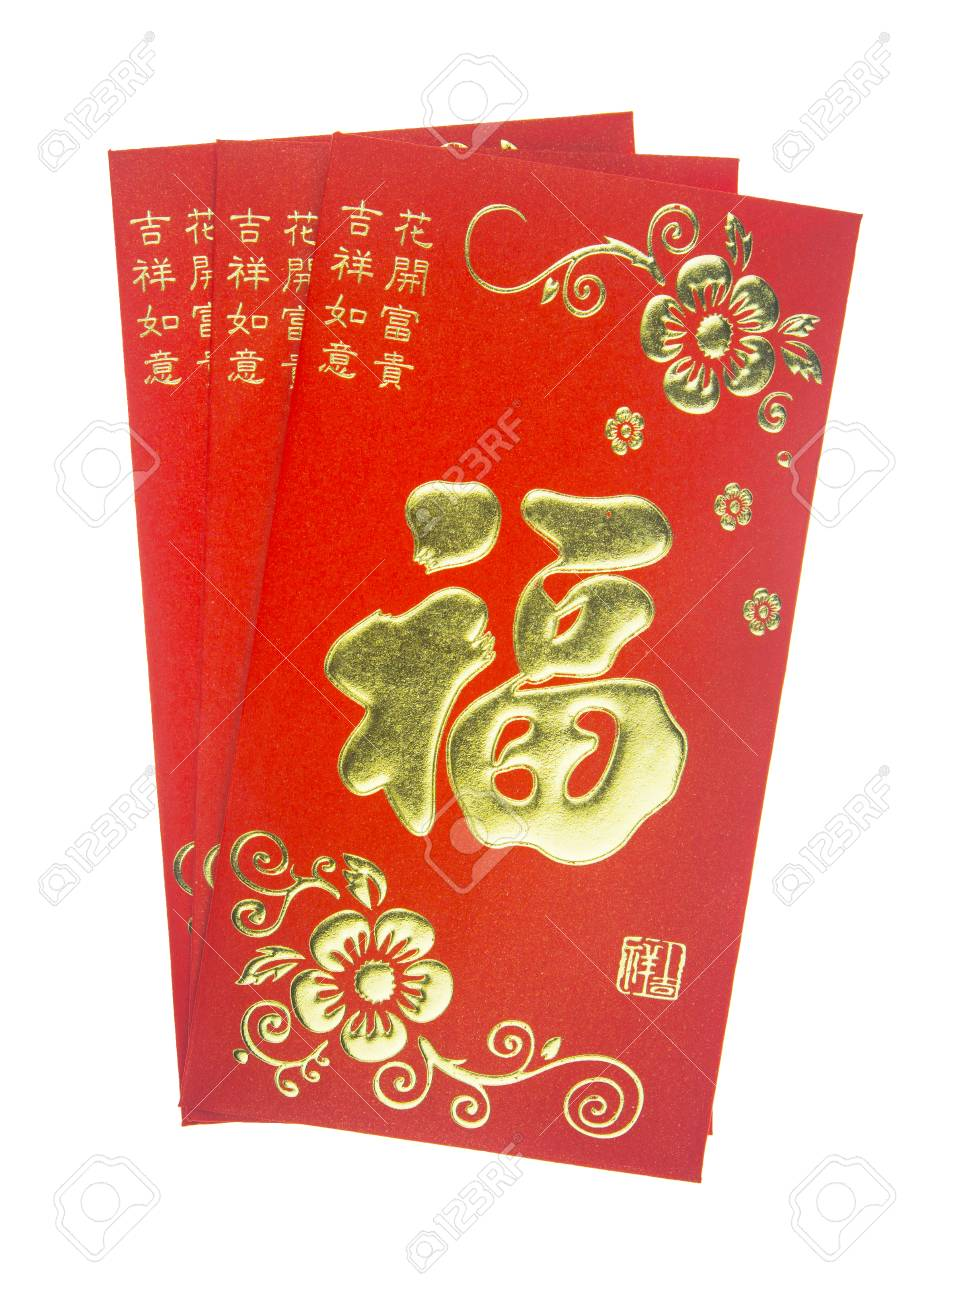 Chinese Red Envelope Isolated On White Background Clipping Paths